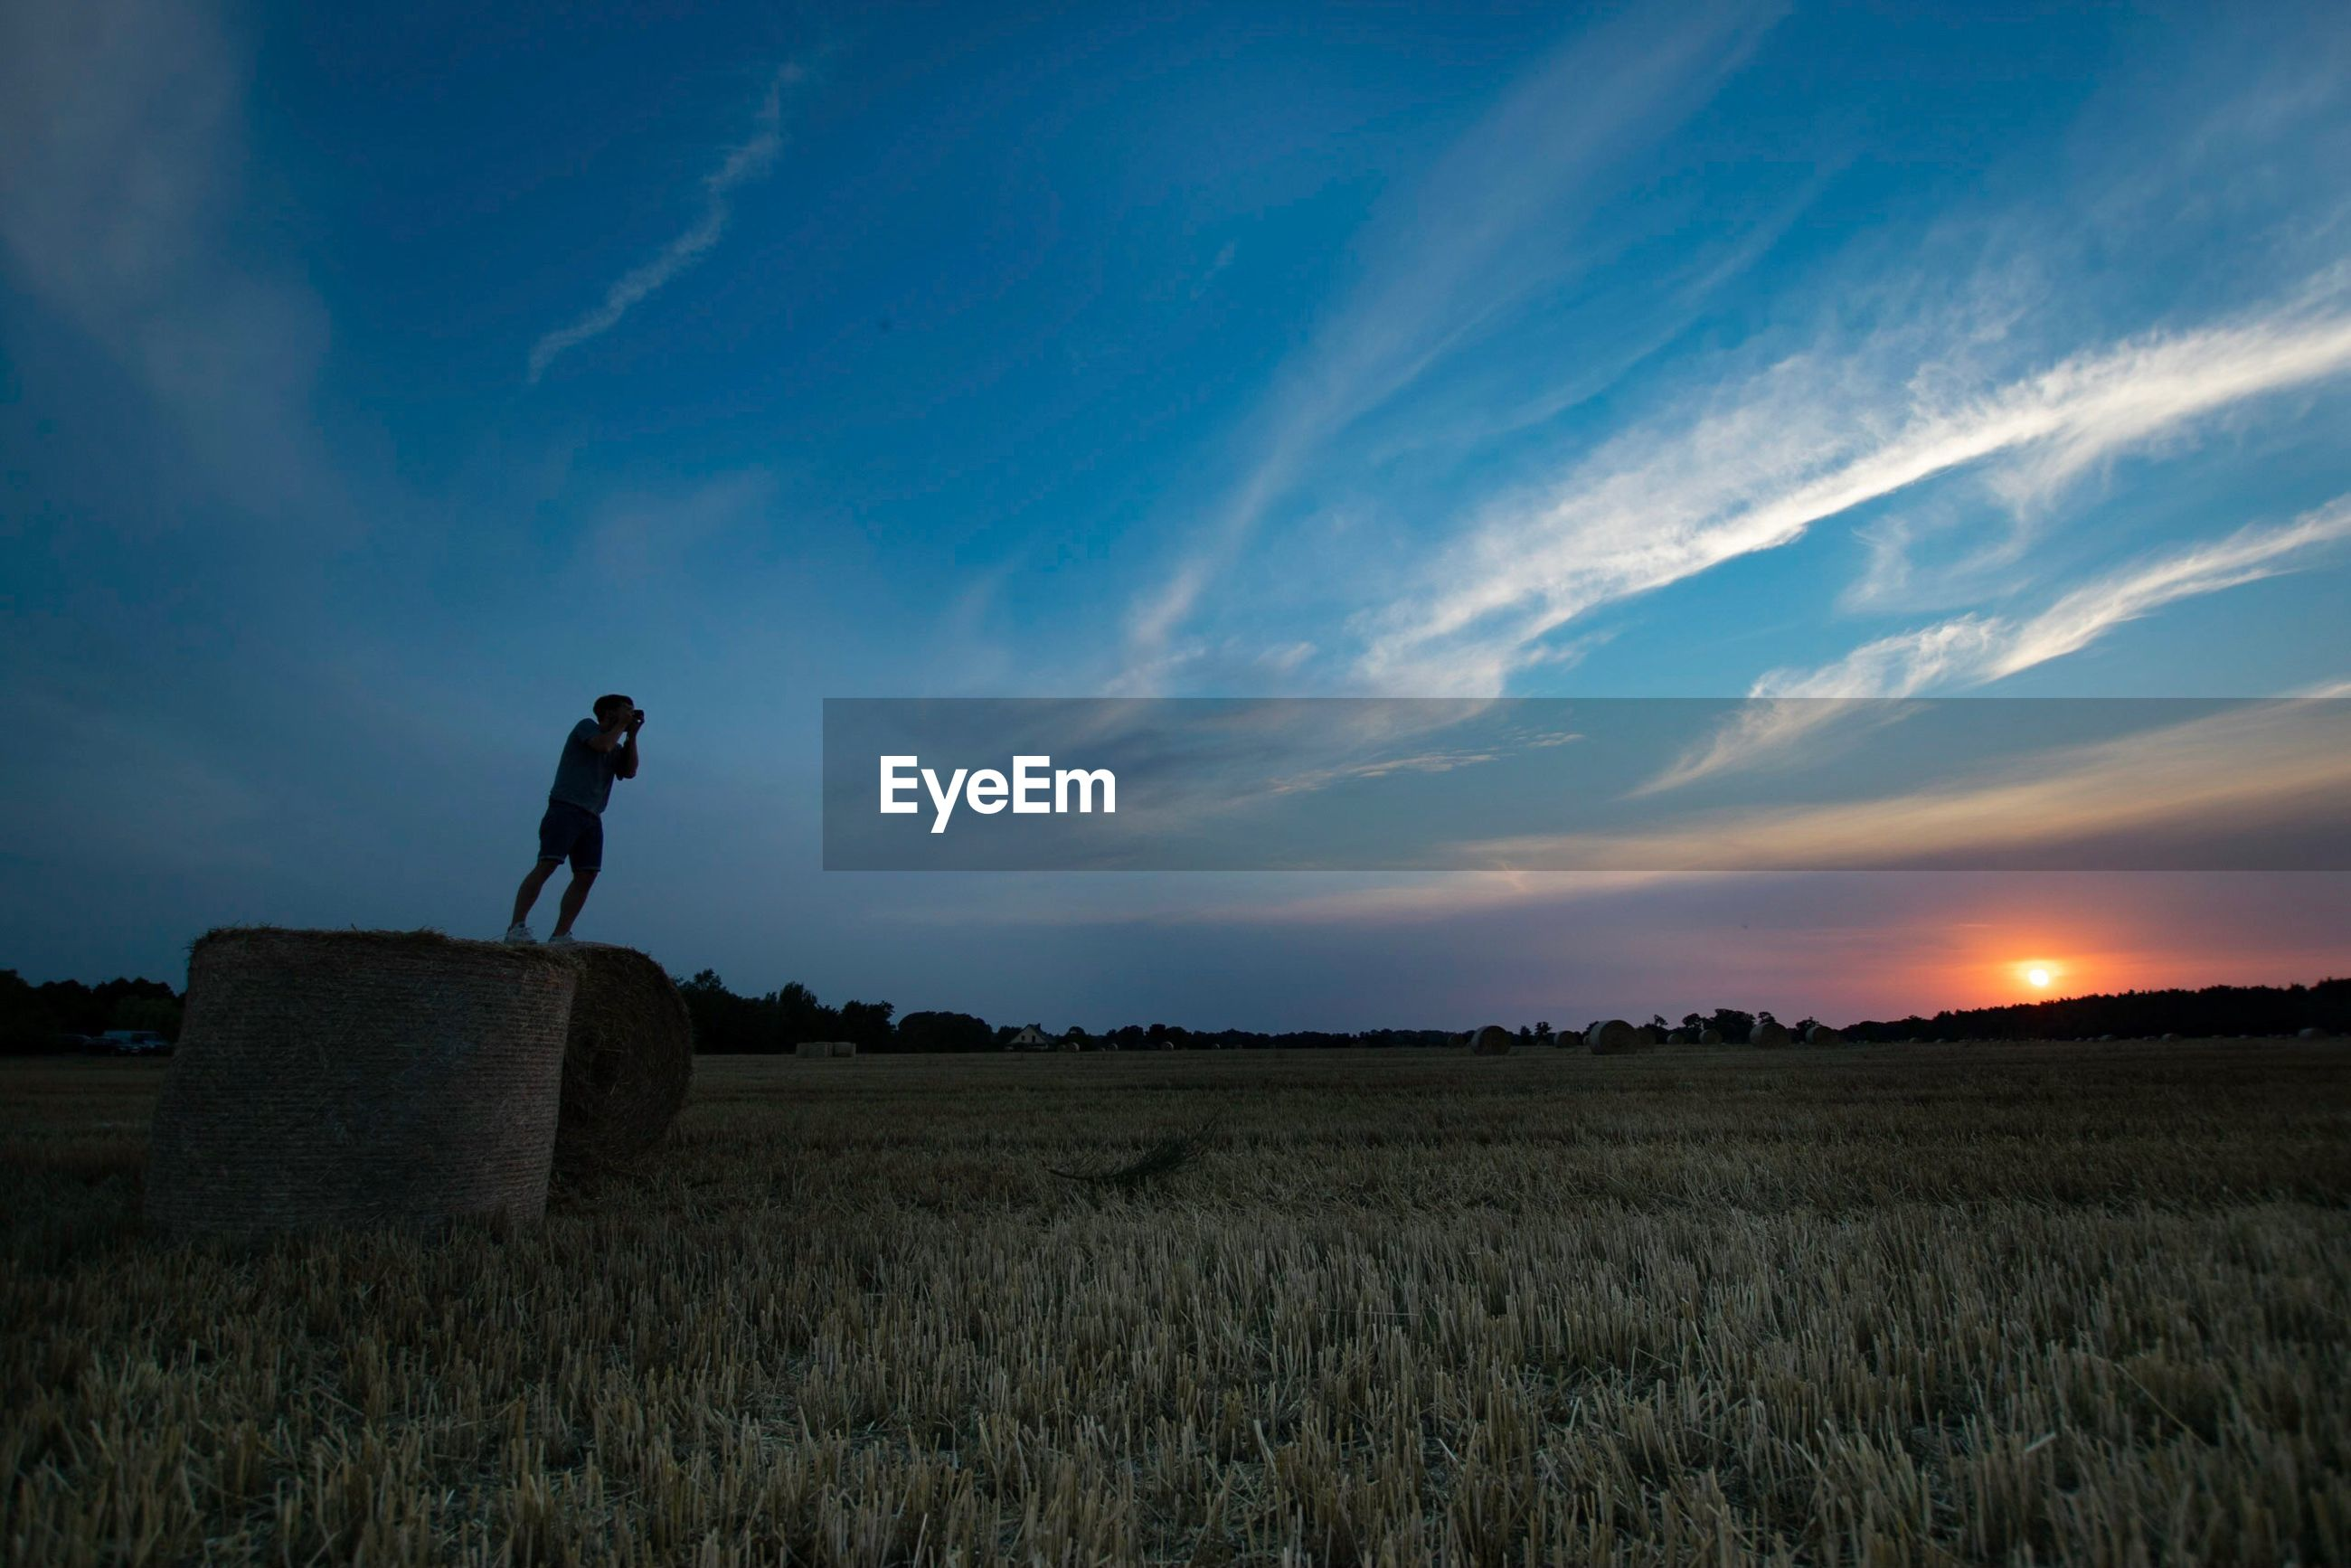 MAN STANDING ON FIELD DURING SUNSET